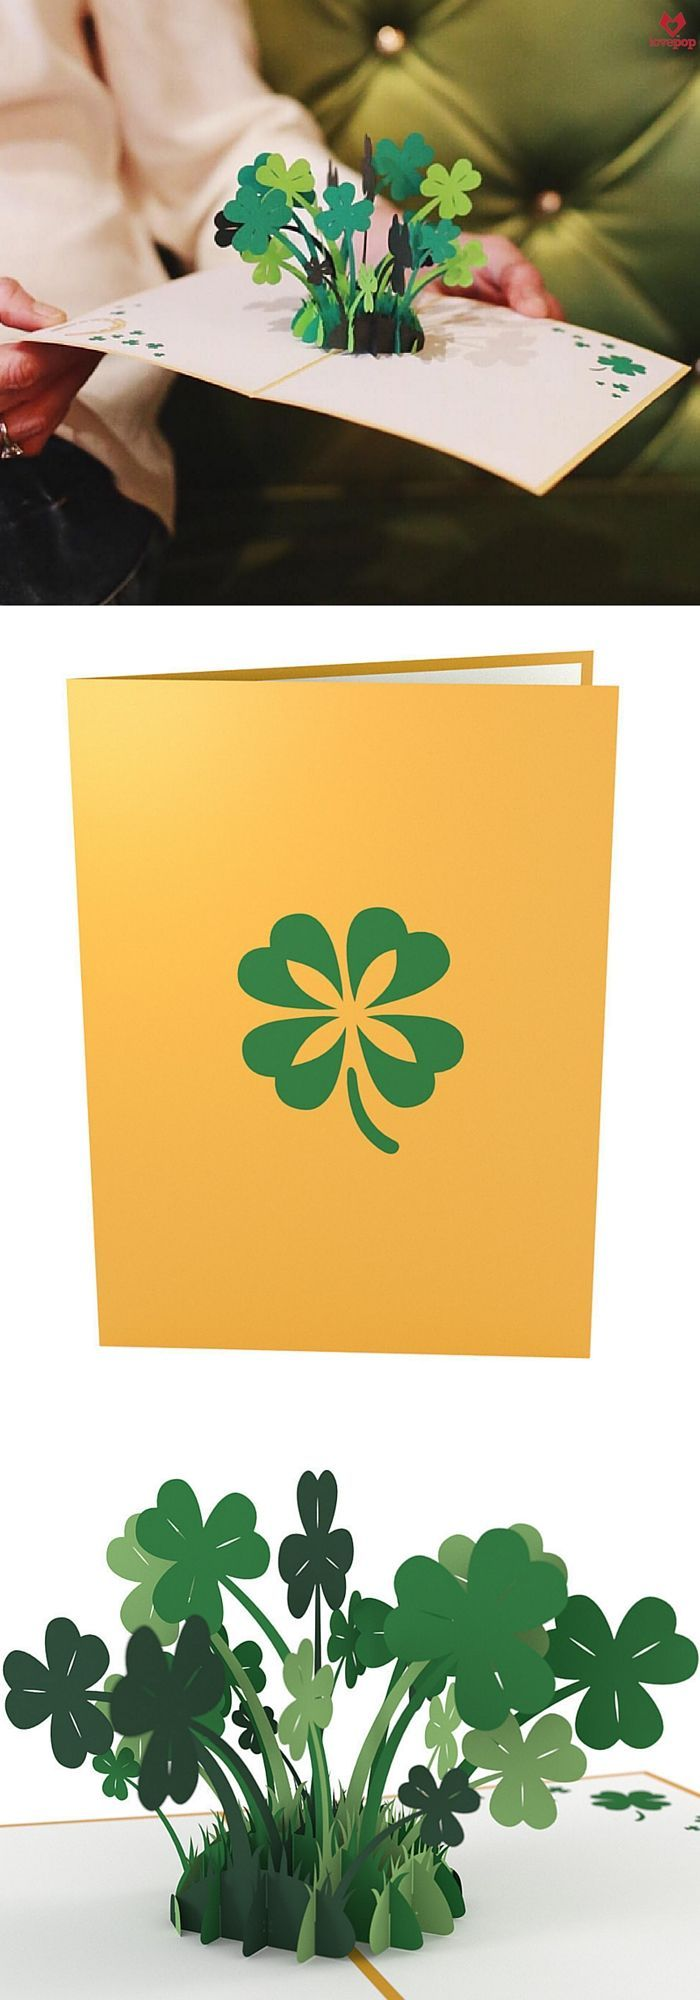 Gift The Luck Of The Irish With A 3d Pop Up Card Full Of Green Shamrocks